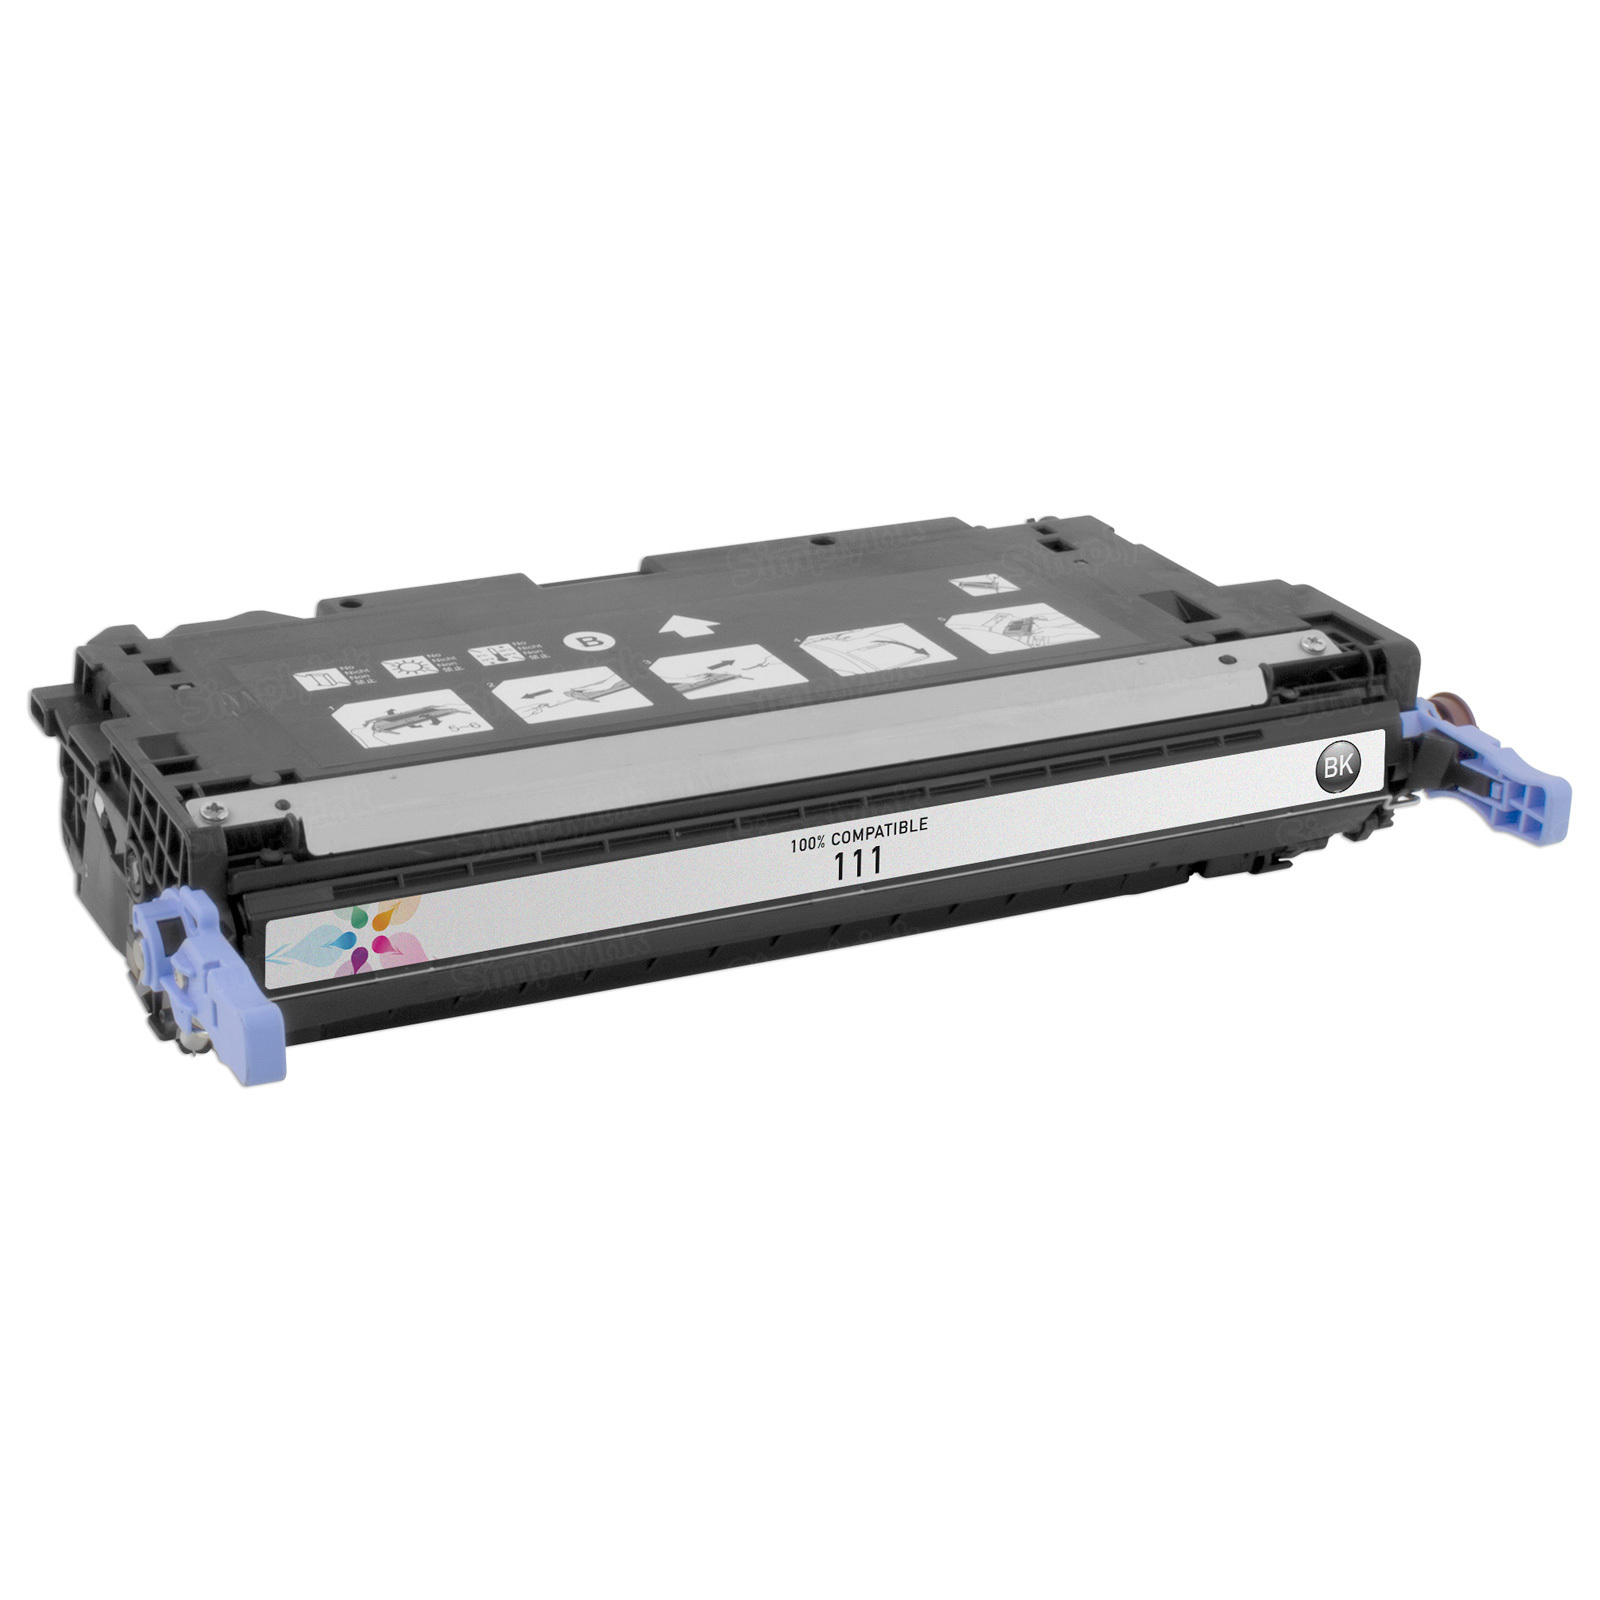 Canon 111) Black Toner Cartridge, Remanufactured